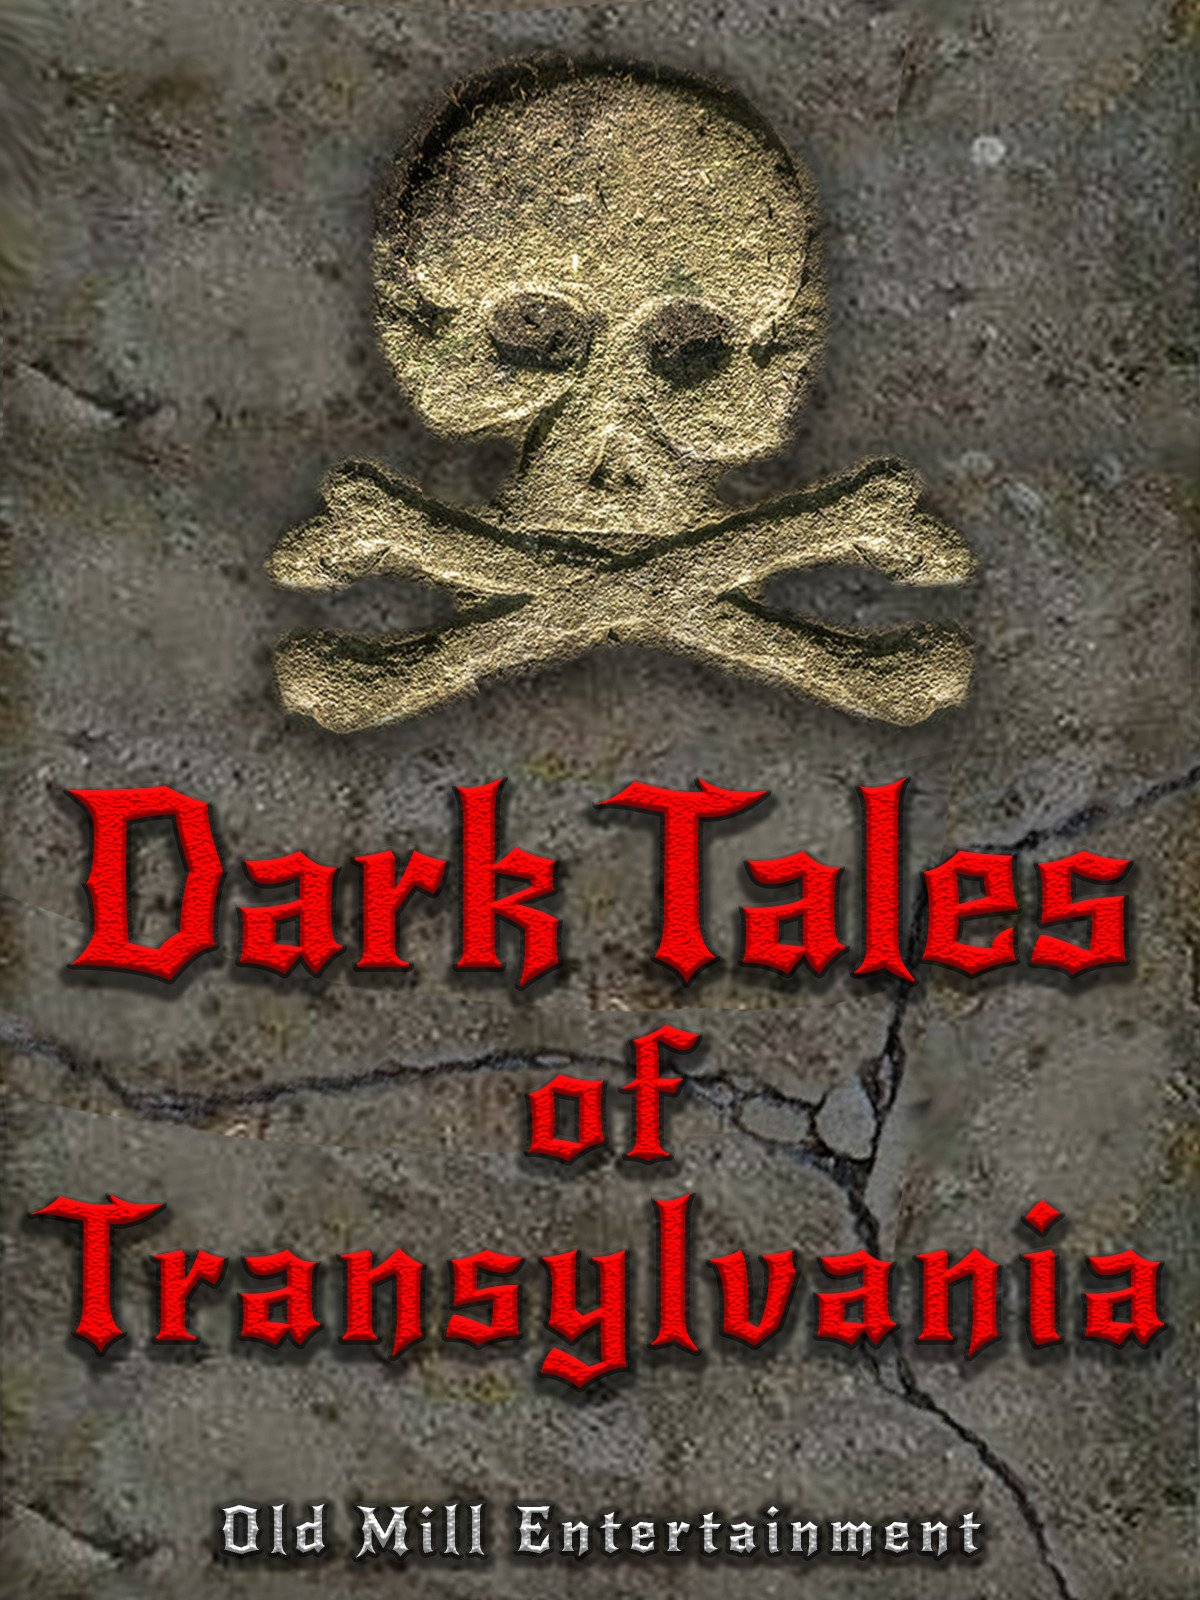 Dark Tales of Transylvania